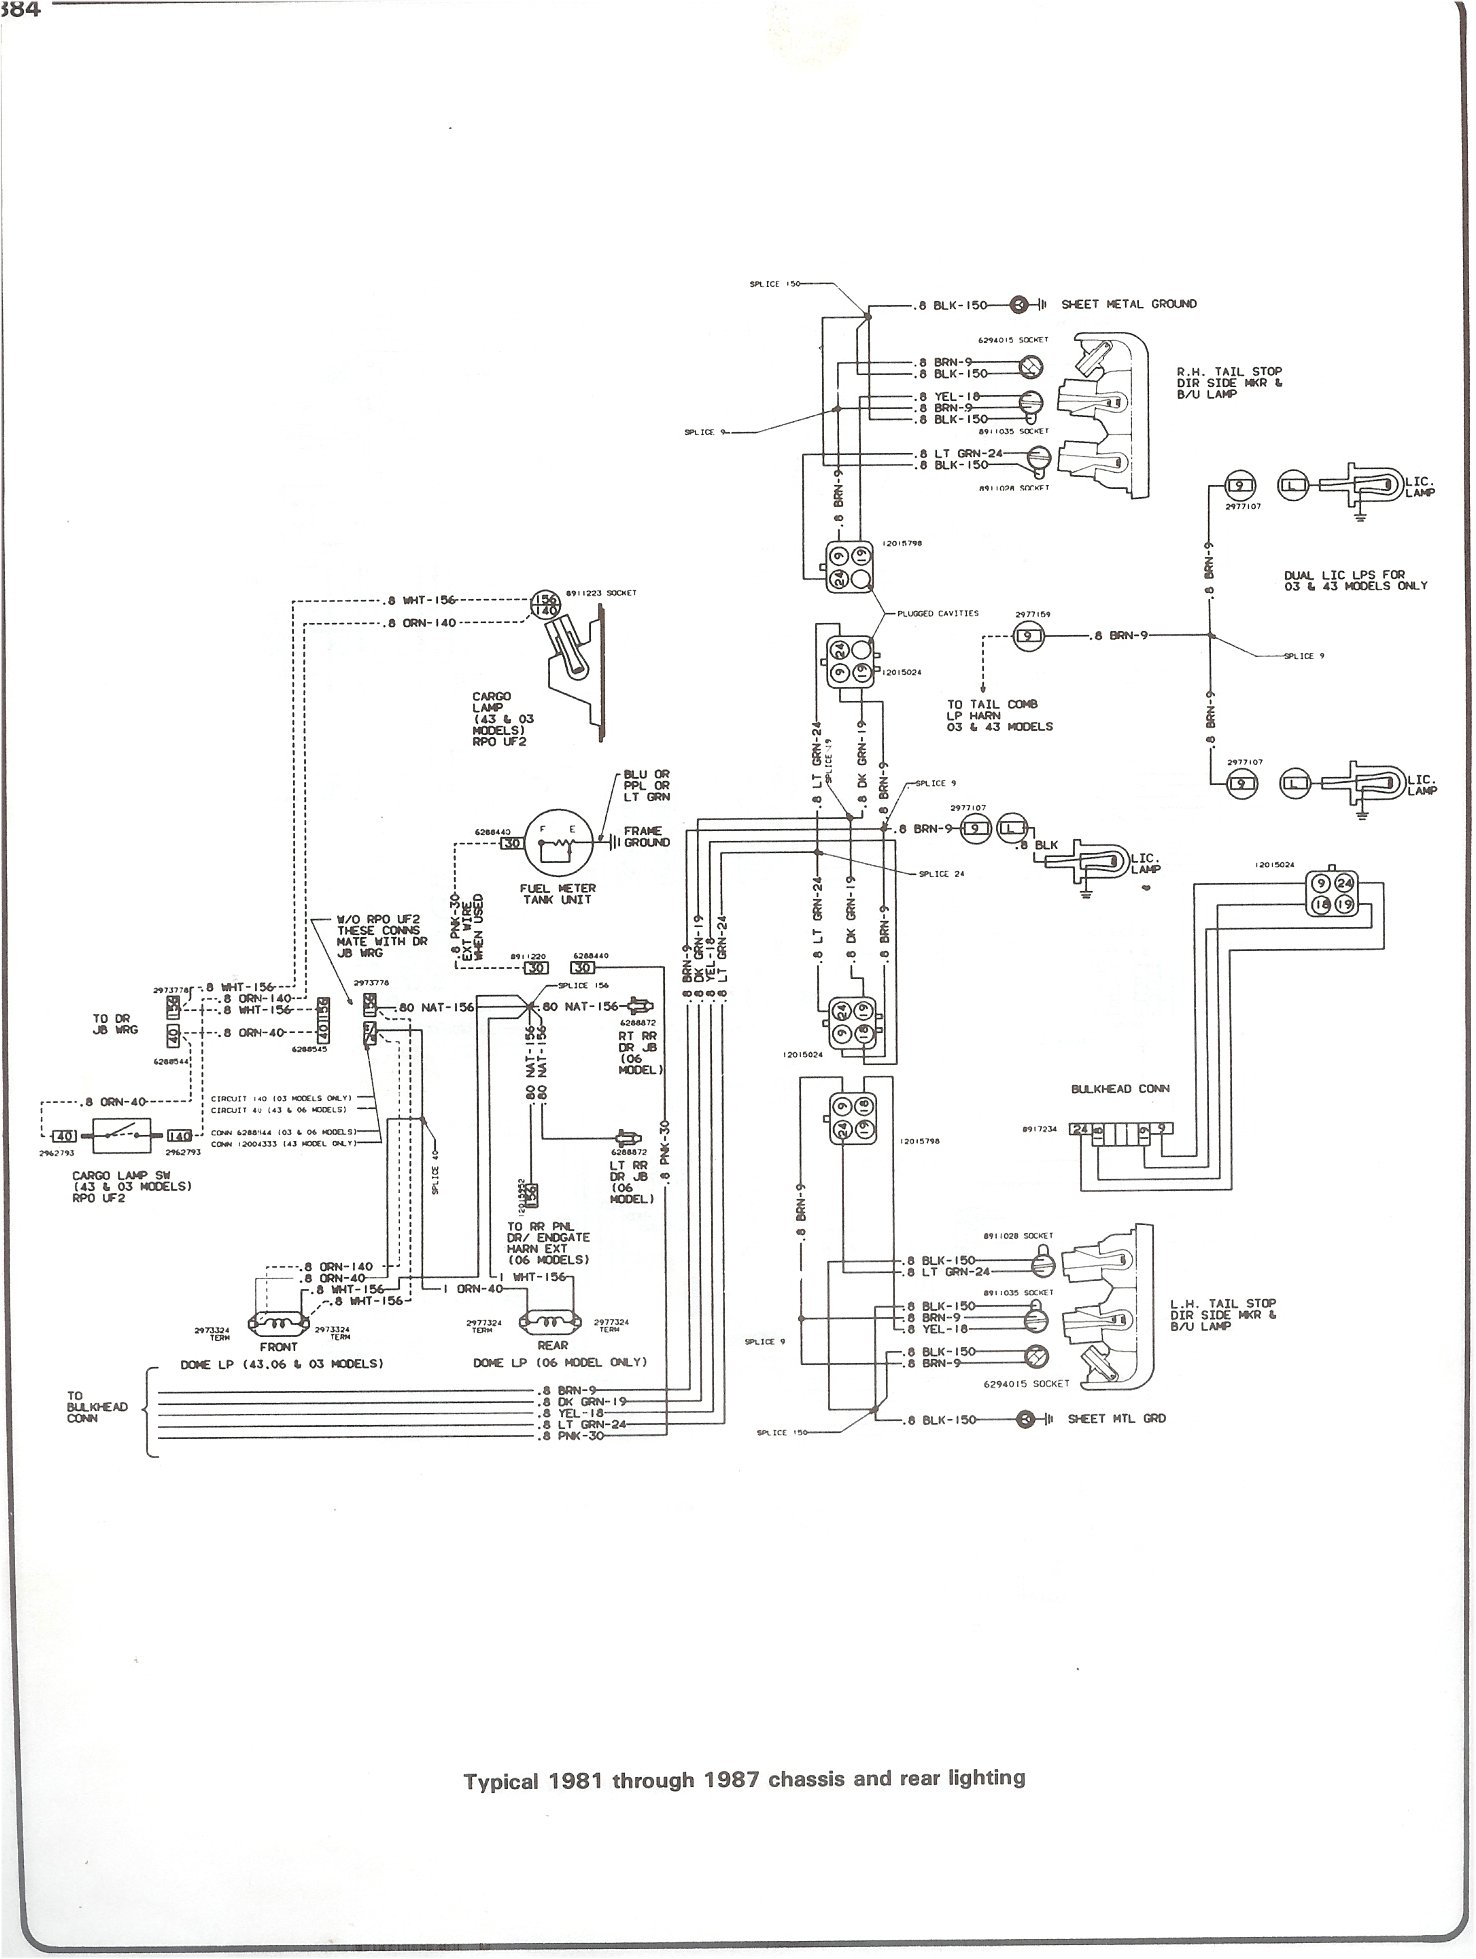 1987 Gmc Ac Wiring Diagram Data Gm C4500 Diagrams 2002 Complete 73 87 2004 Sierra